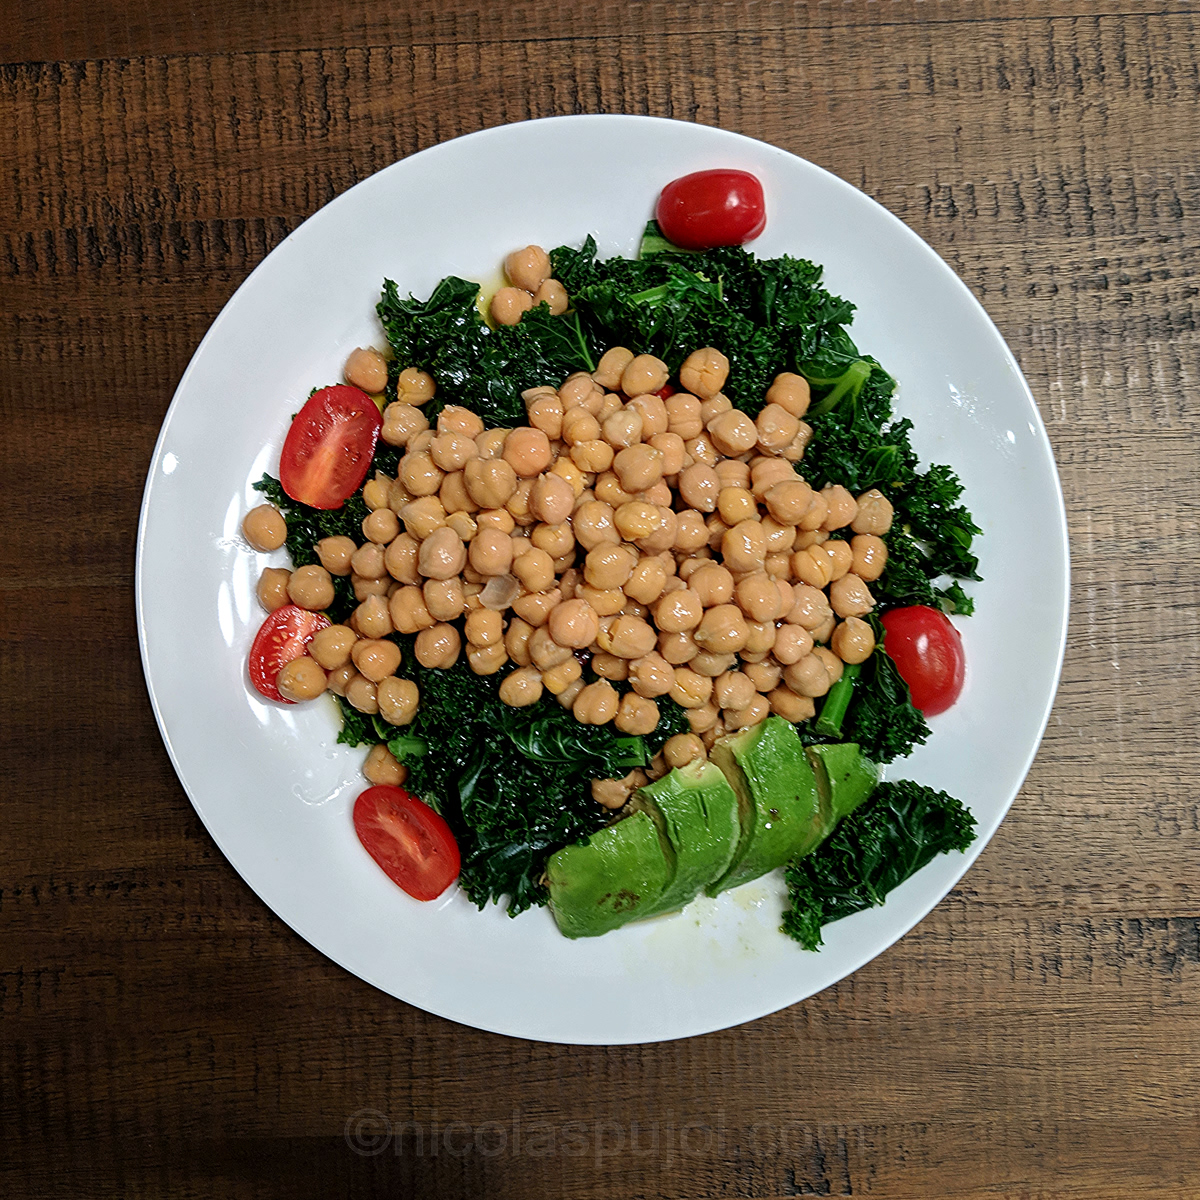 garbanzo beans and kale salad